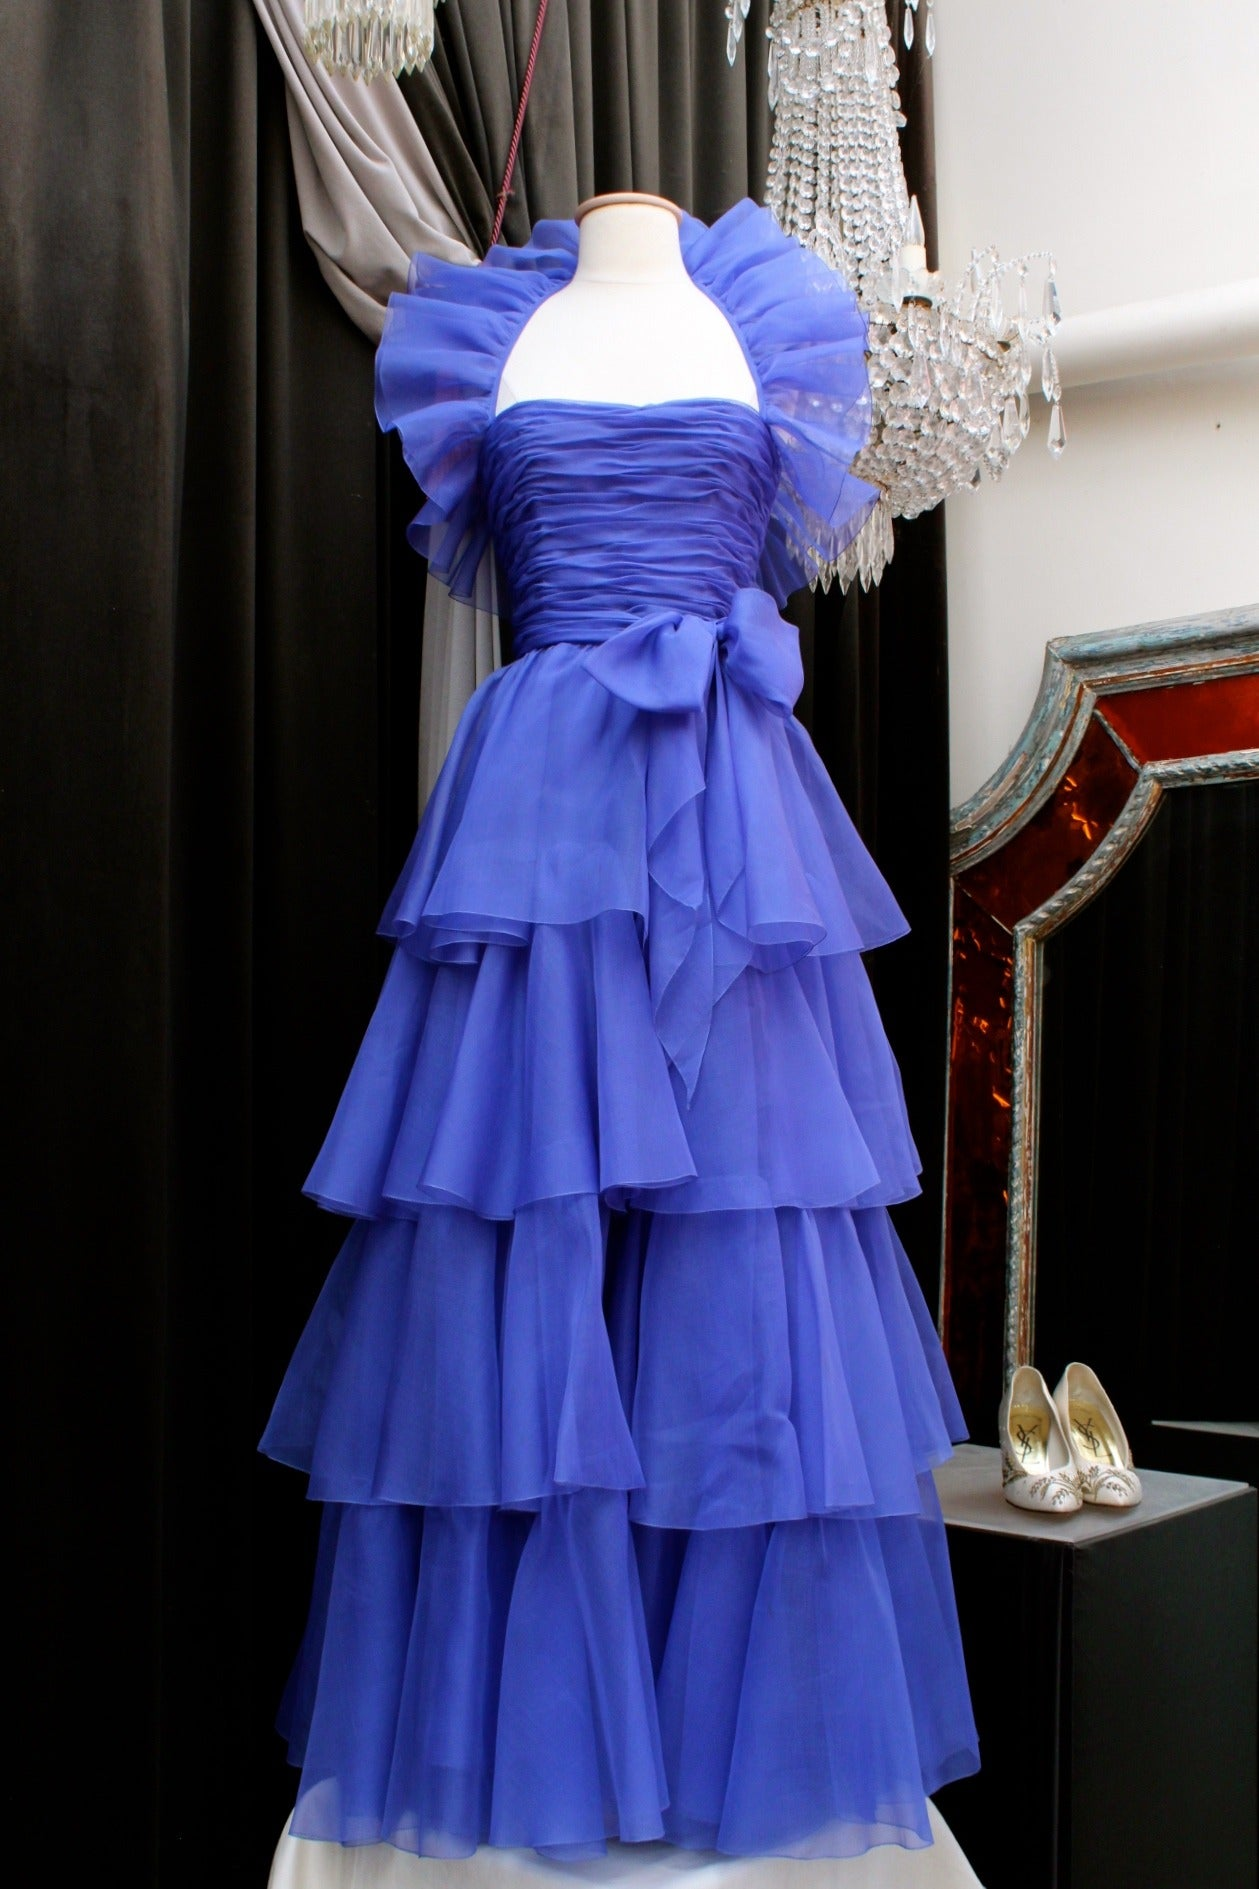 Beautiful Haute Couture evening gown by Jean-Louis Scherrer from the 1980s, composed of a blue silk organza draped corsage adorned with flounces running around the neck, and with a long skirt of organza large flounces.  There is also a waistband of